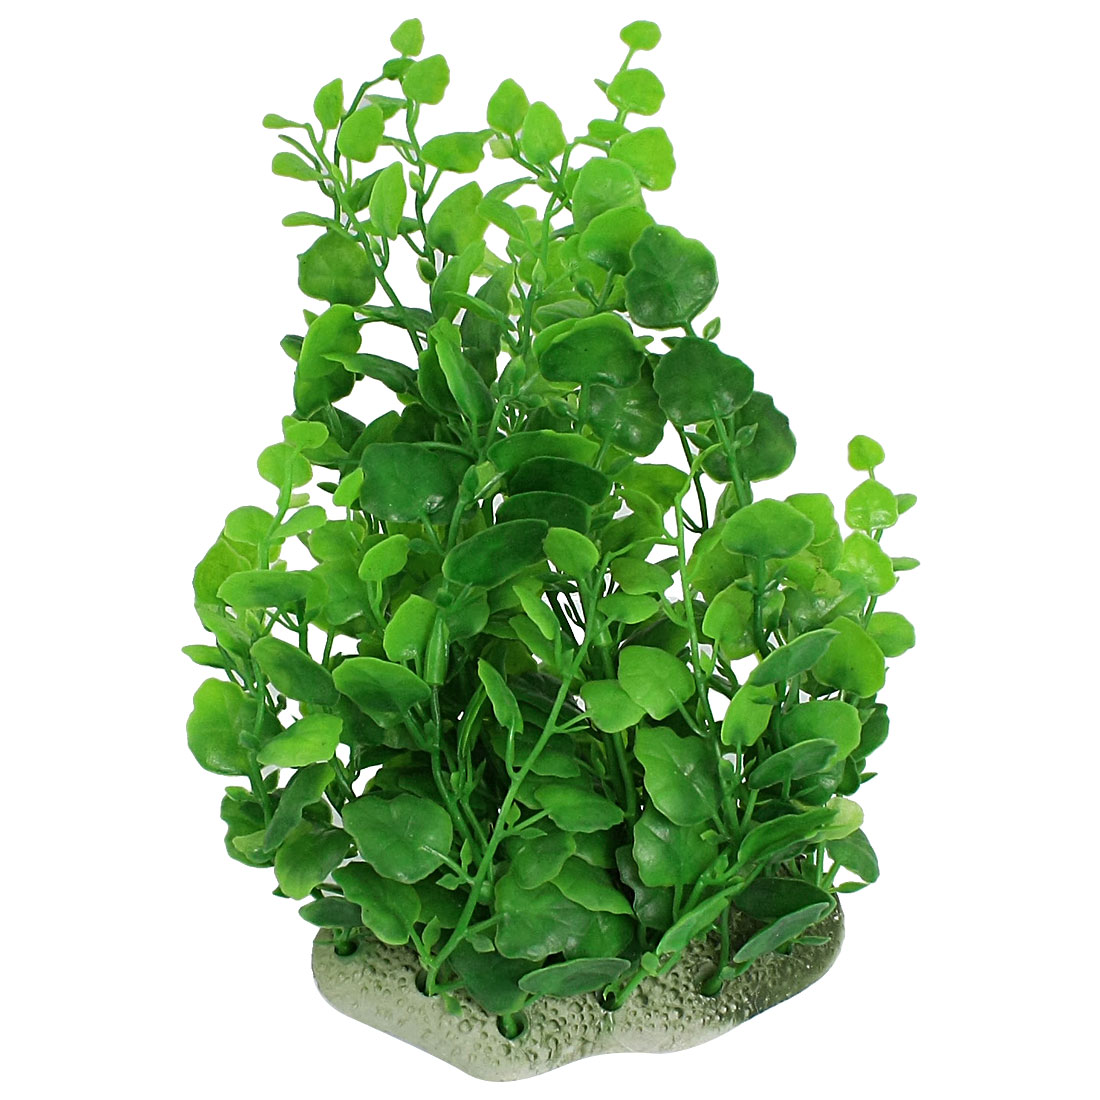 23cm Hight Aquarium Tank Green Artificial Plastic Water Leaf Plant Adorn